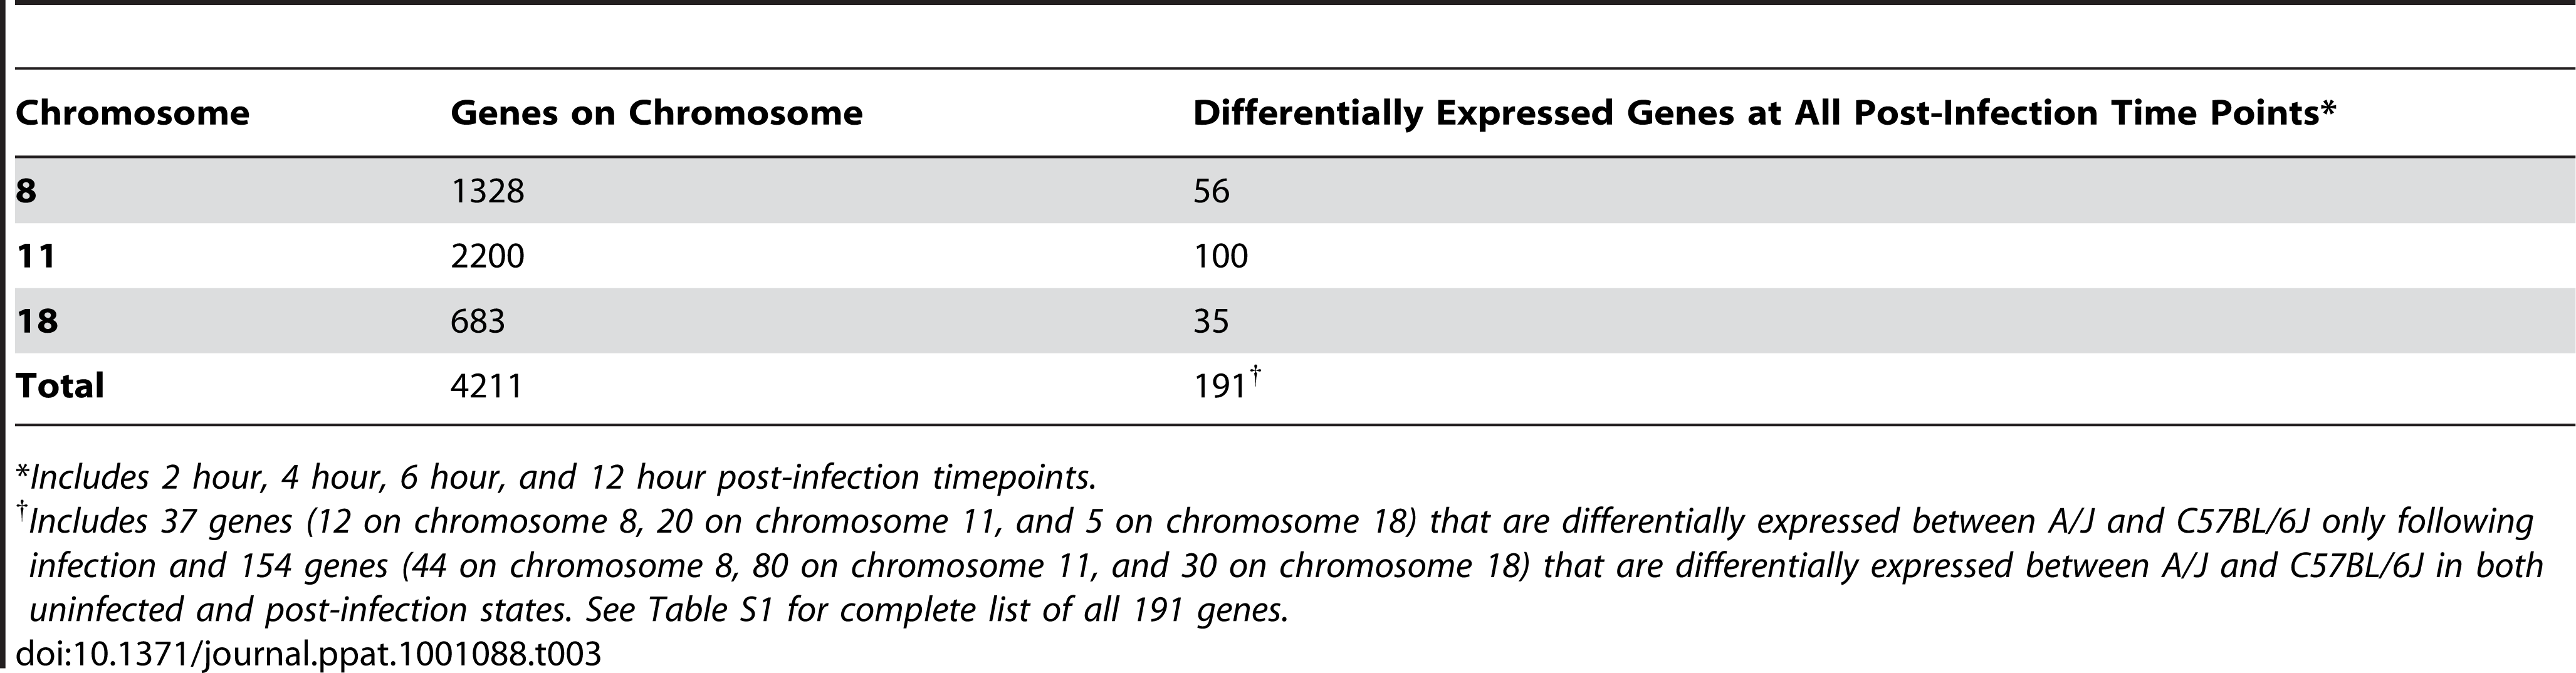 Number of genes on murine chromosomes 8, 11, and 18 that are differentially expressed between A/J and C57BL/6J at all post-infection timepoints following intraperitoneal infection with <i>S. aureus</i>.